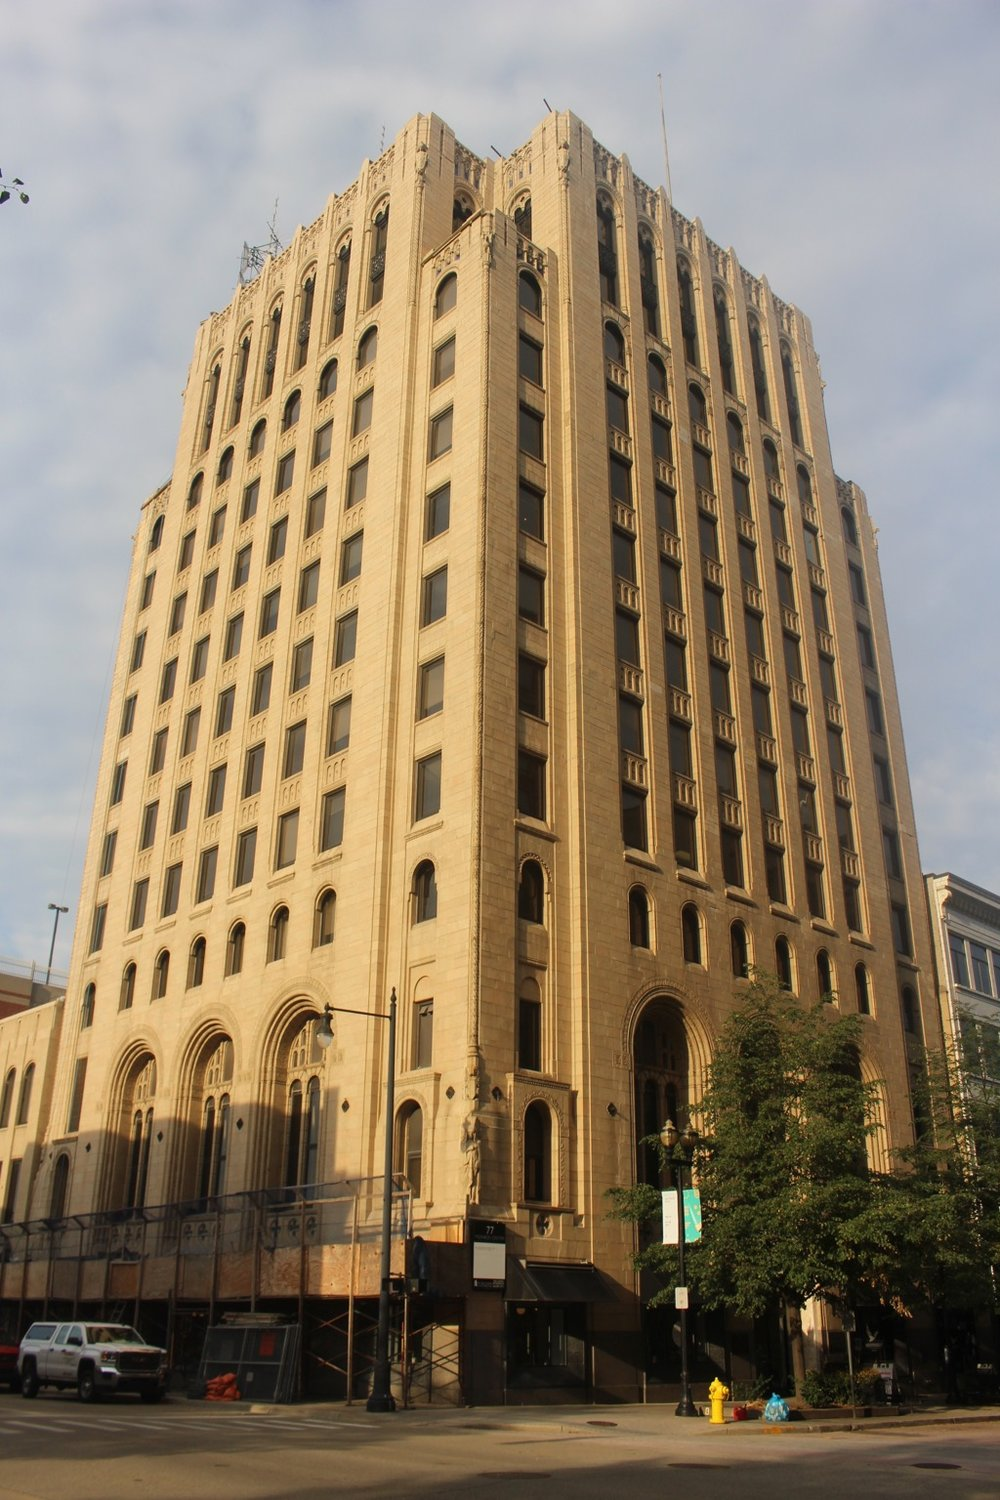 Former Michigan National Bank Building on Monroe Center.  Current photo Pam VanderPloeg, 2017.